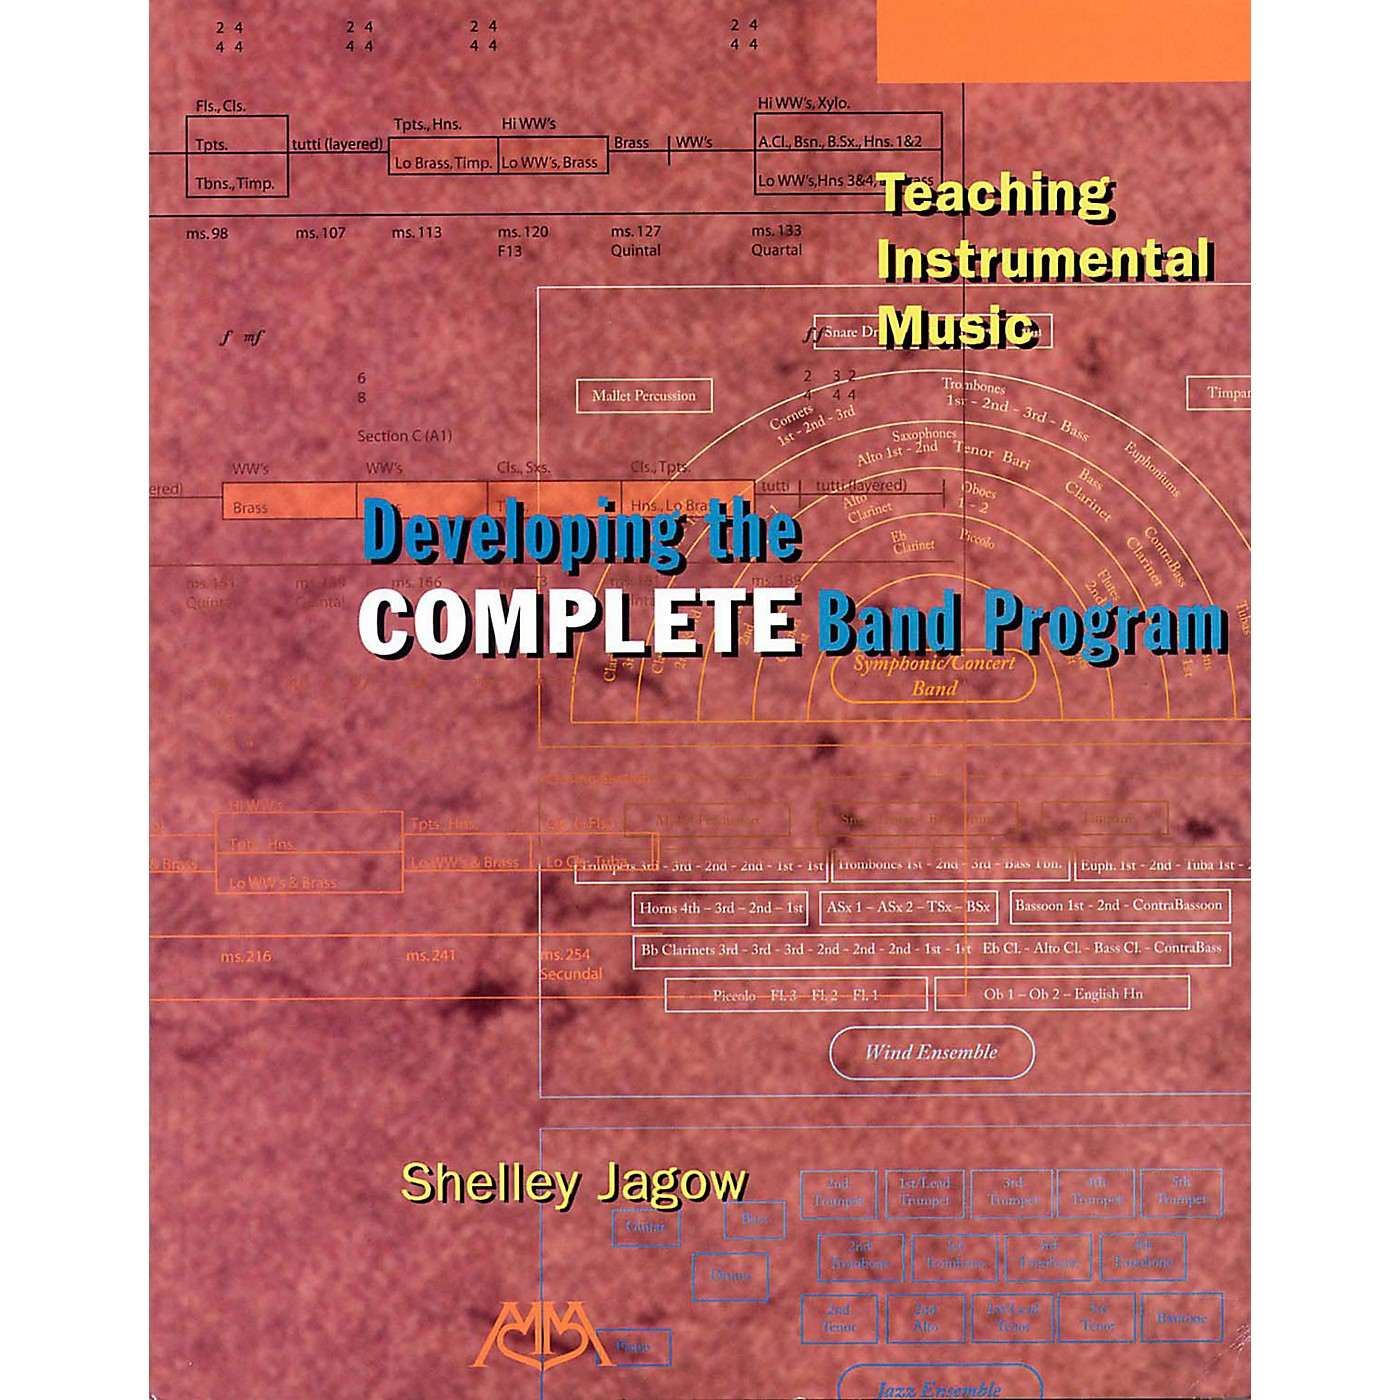 Meredith Music Teaching Instrumental Music - Developing The Complete Band Program thumbnail